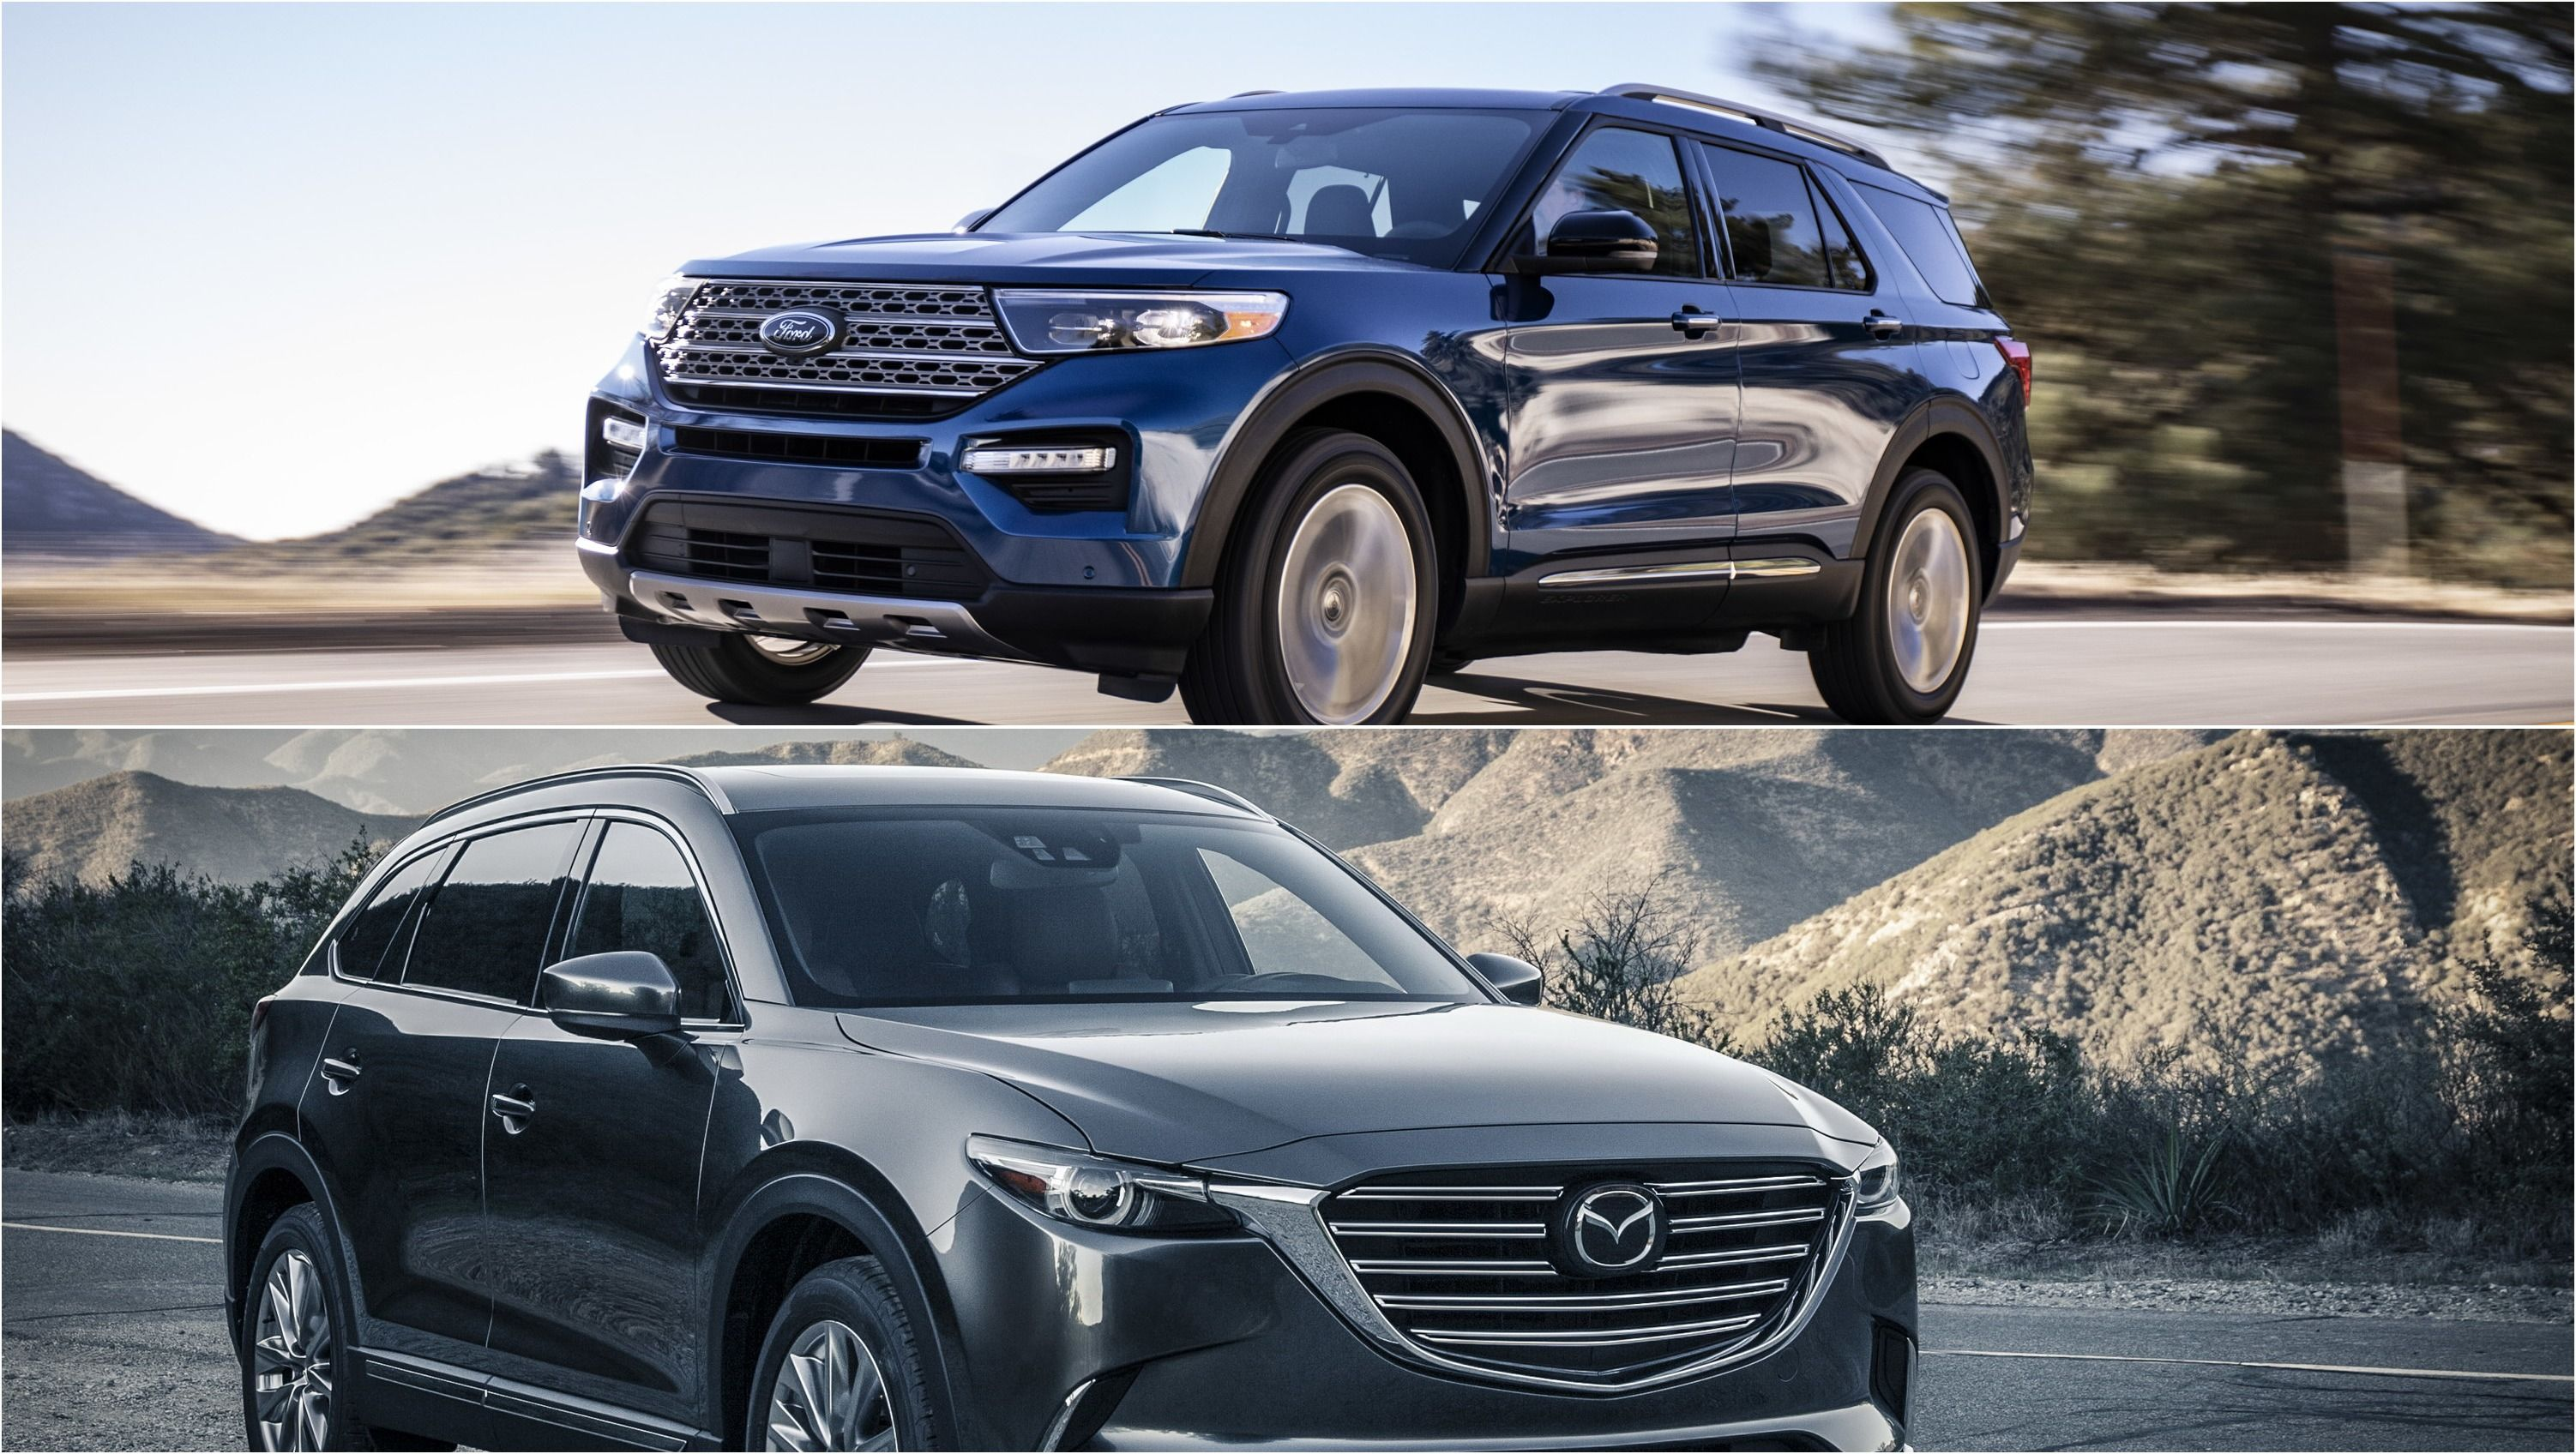 2020 Ford Explorer Vs 2019 Mazda Cx 9 Ford Explorer Mazda Cx 9